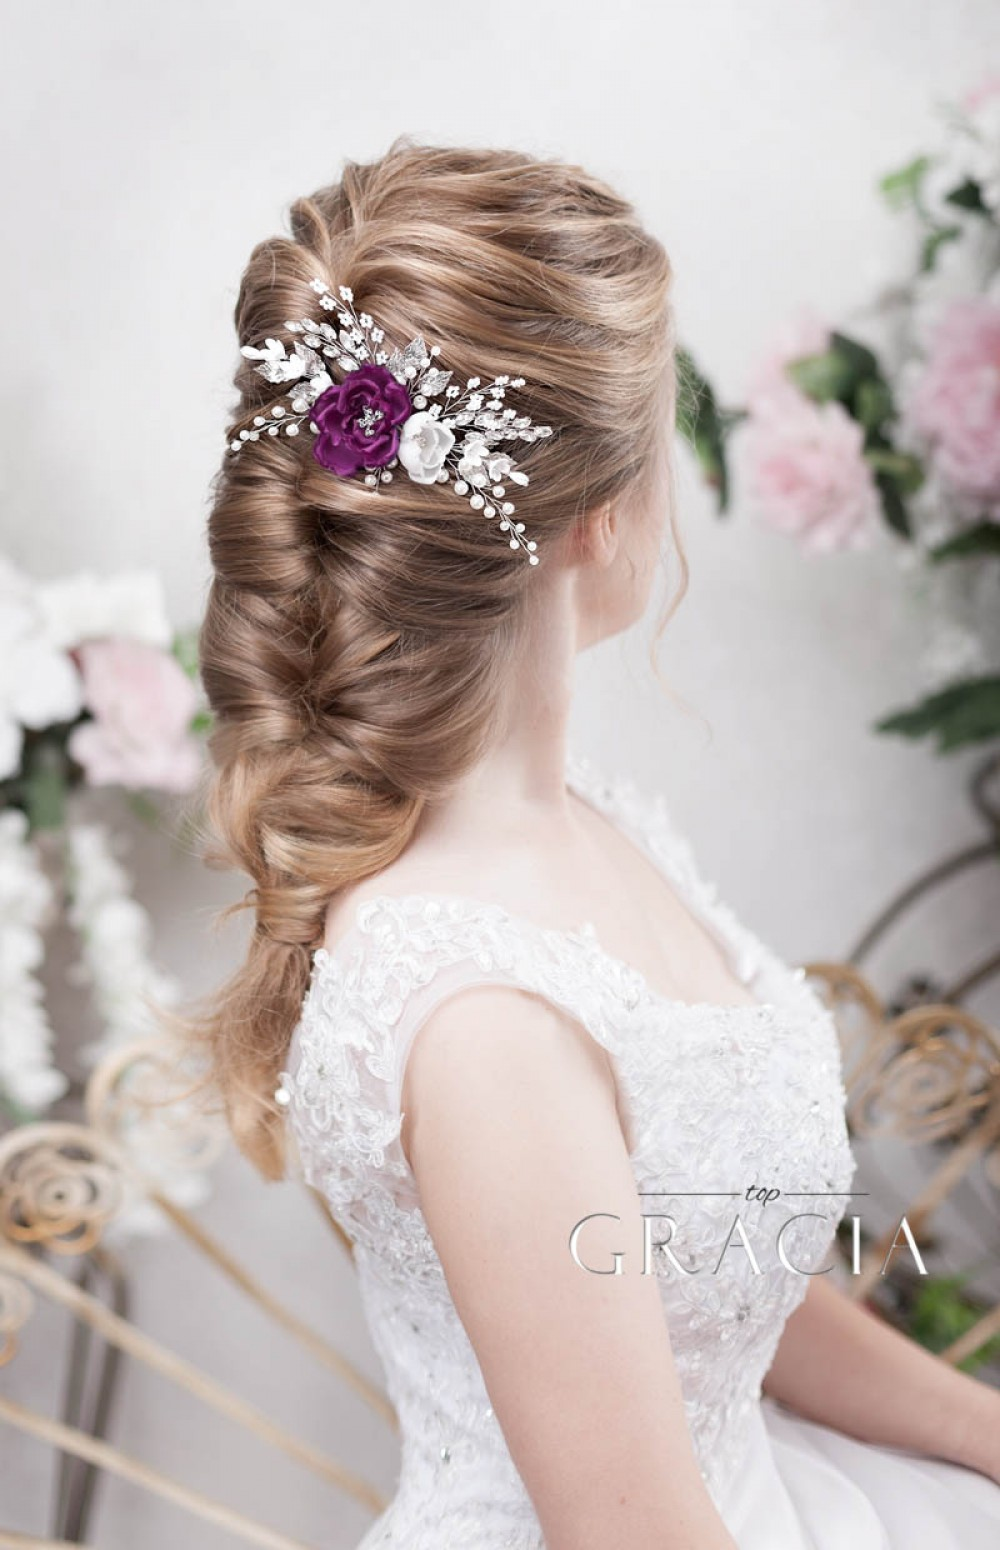 hair jewelry pieces for wedding days headbands in vintage style